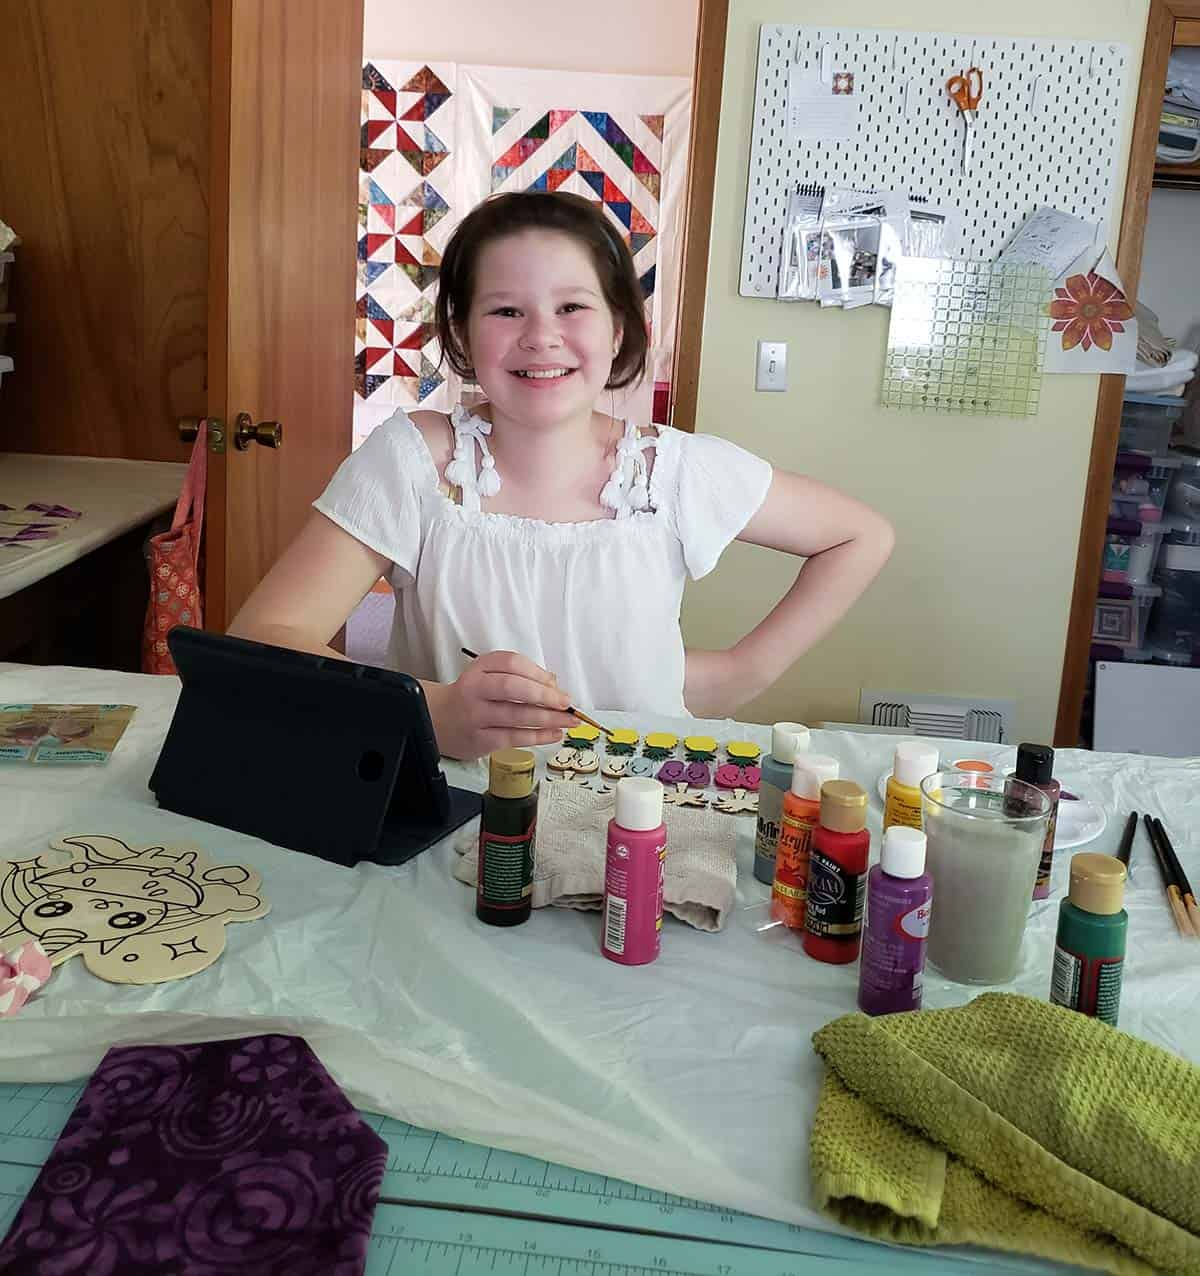 Granddaughter painting and doing crafts